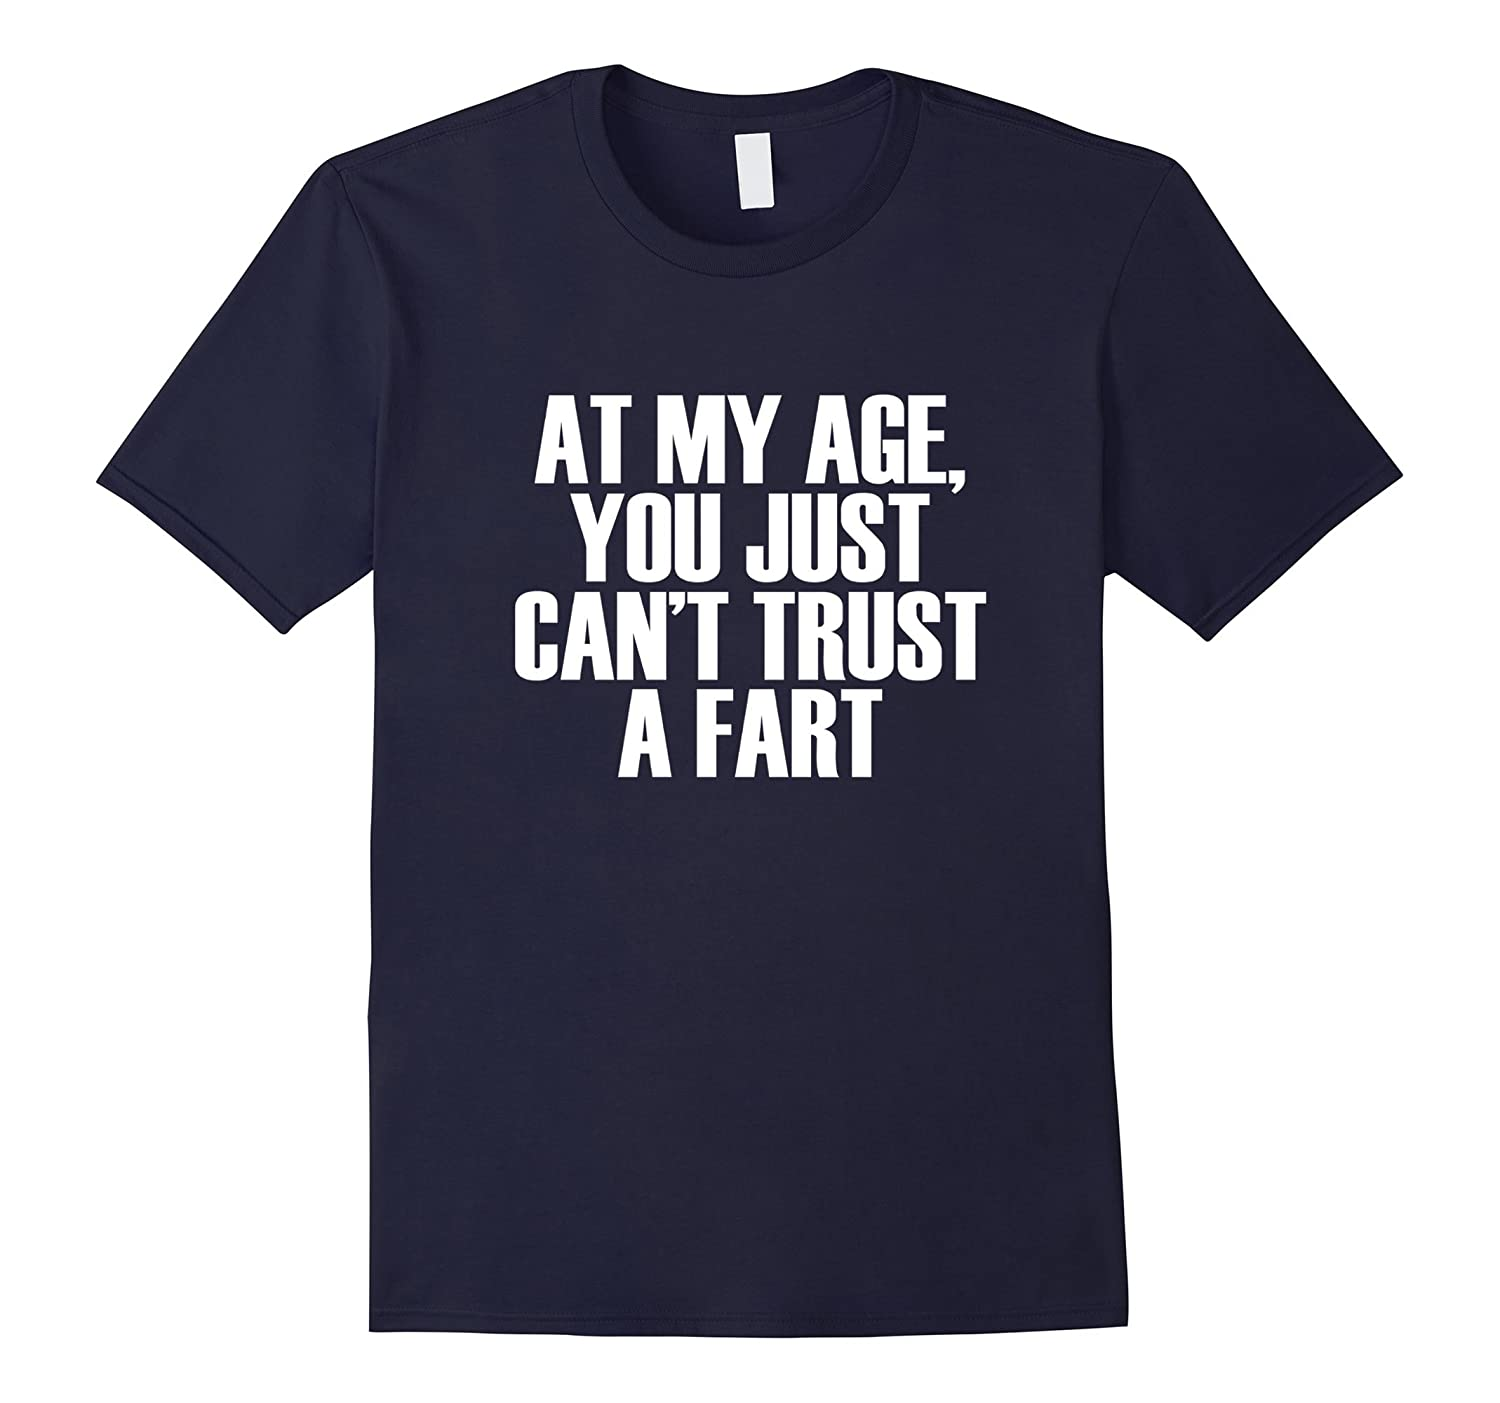 At My Age, You Just Can't Trust a Fart Funny T-Shirt-CL